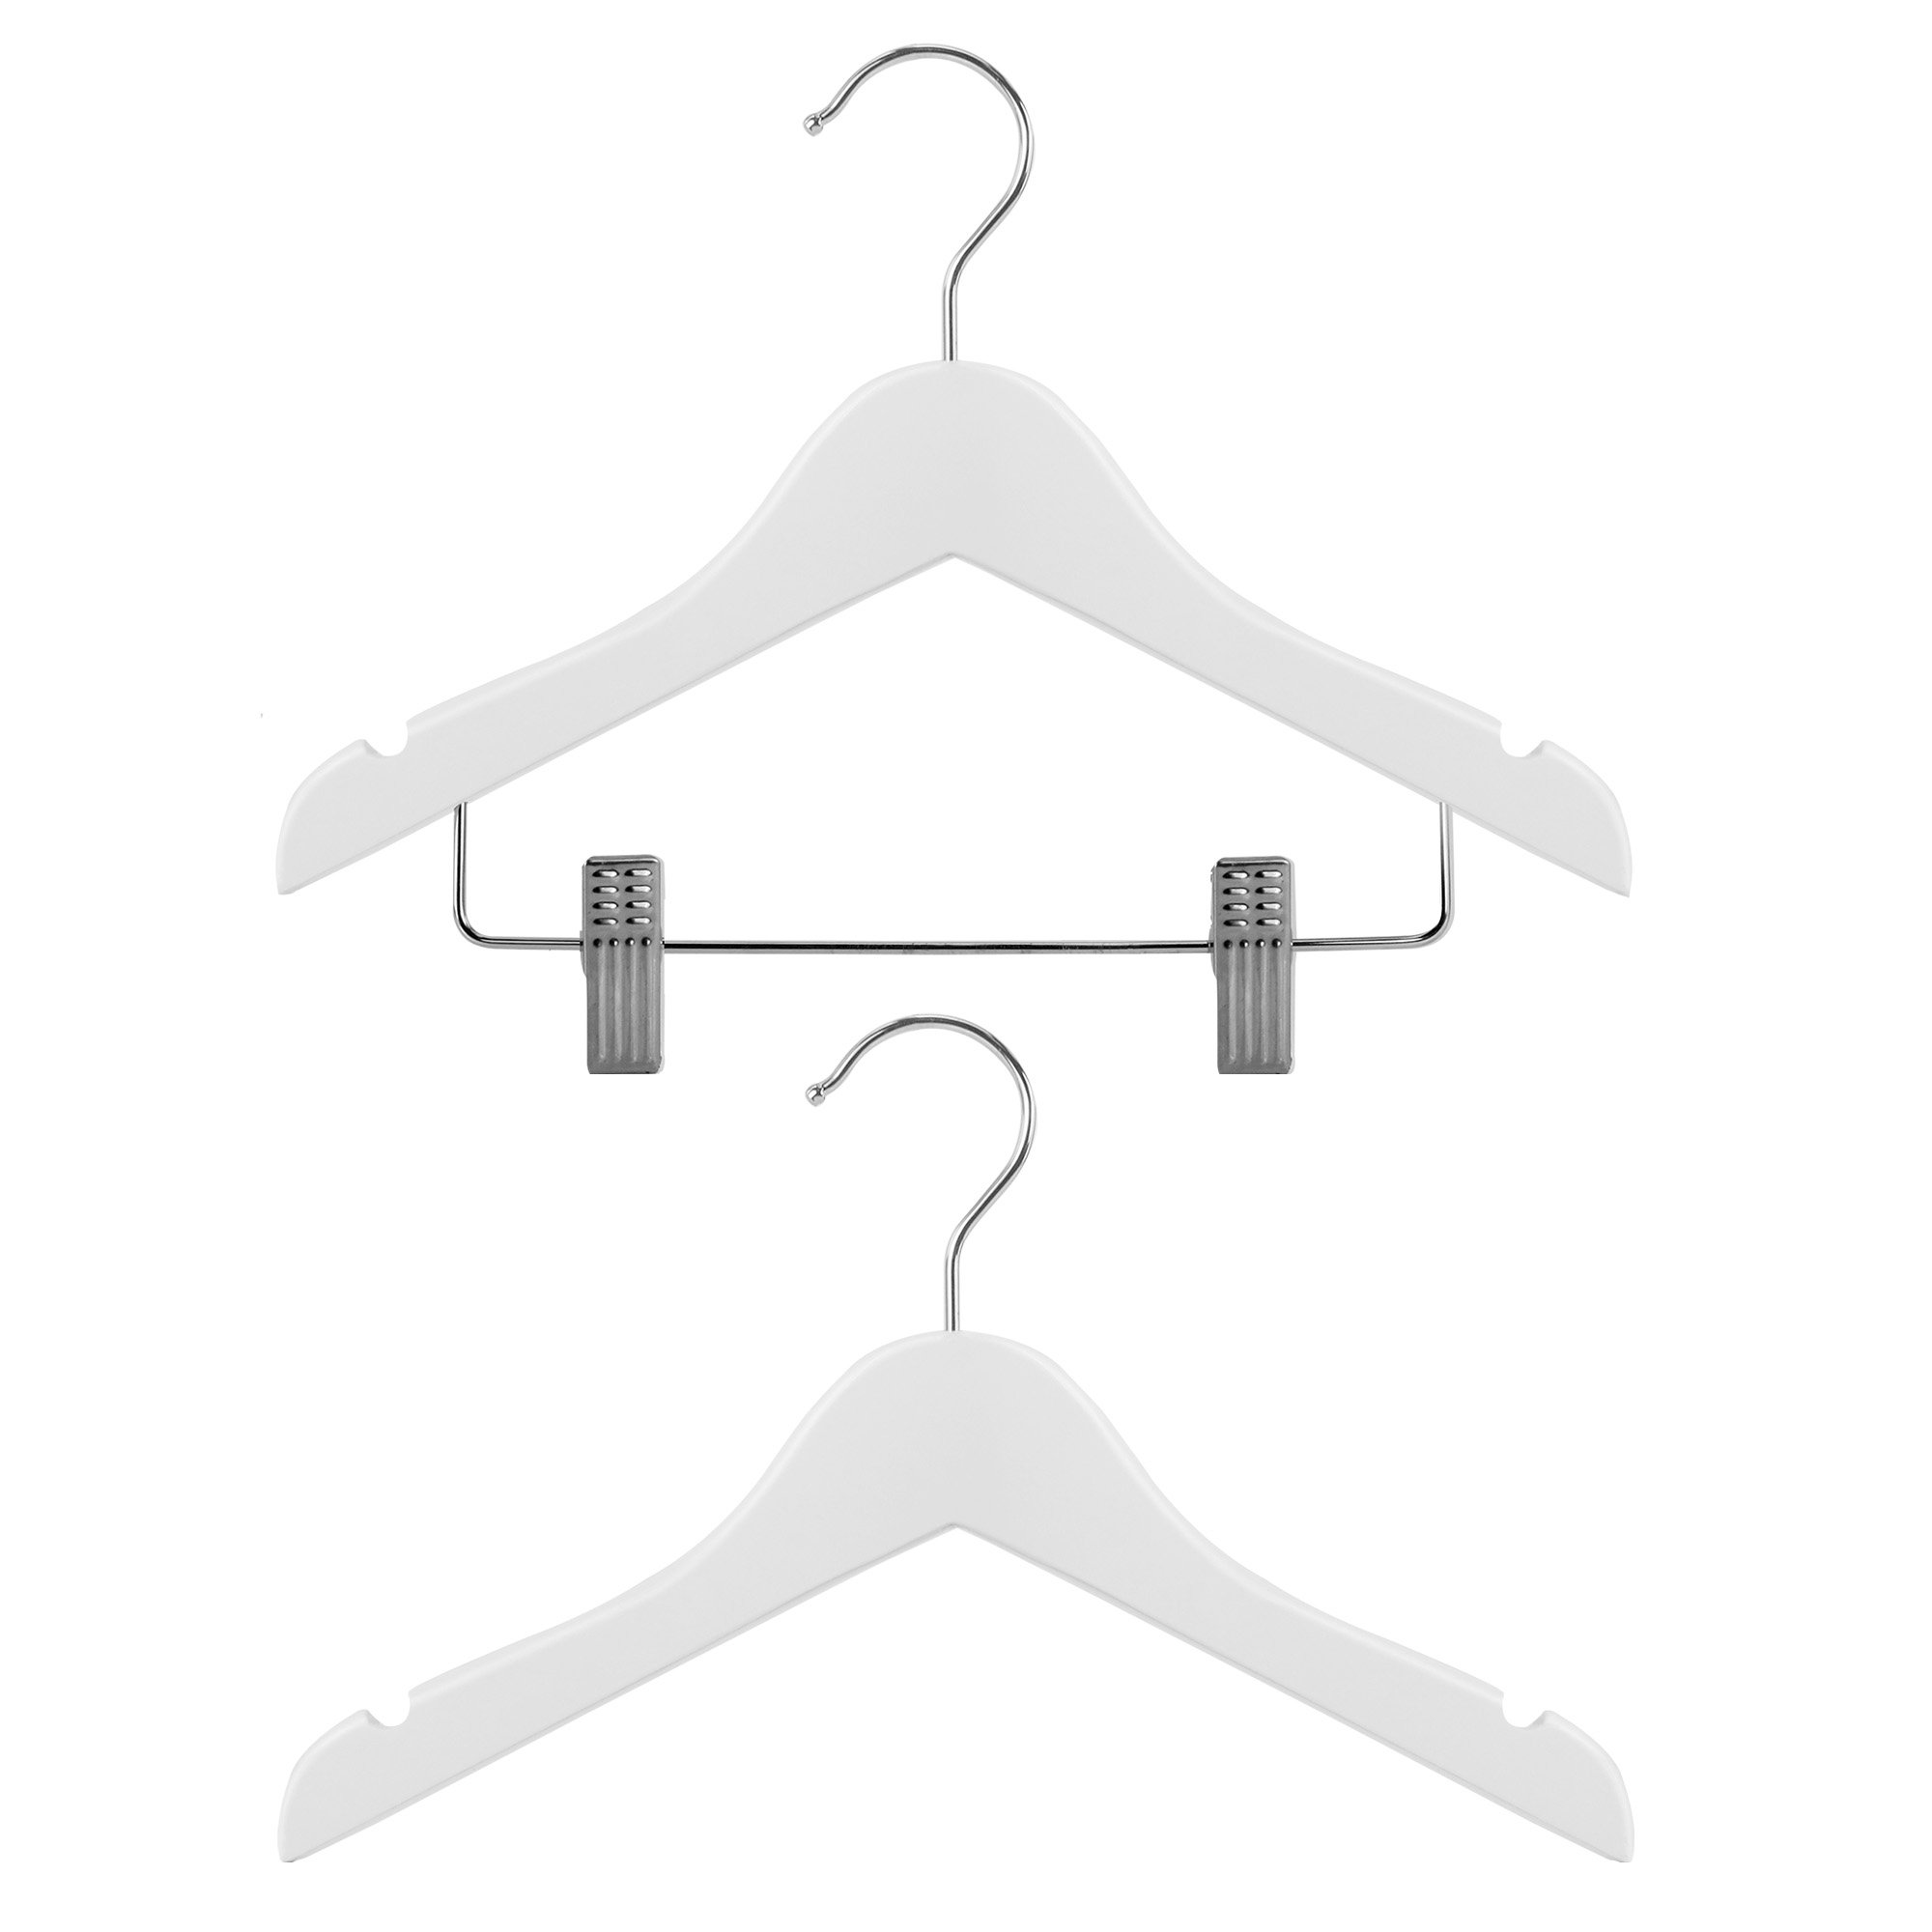 HANGERWORLD Set of 12 Kid's White Wooden Top & Pants Clip Closet Coat Hangers - For Baby & Toddler Clothes 10 inches